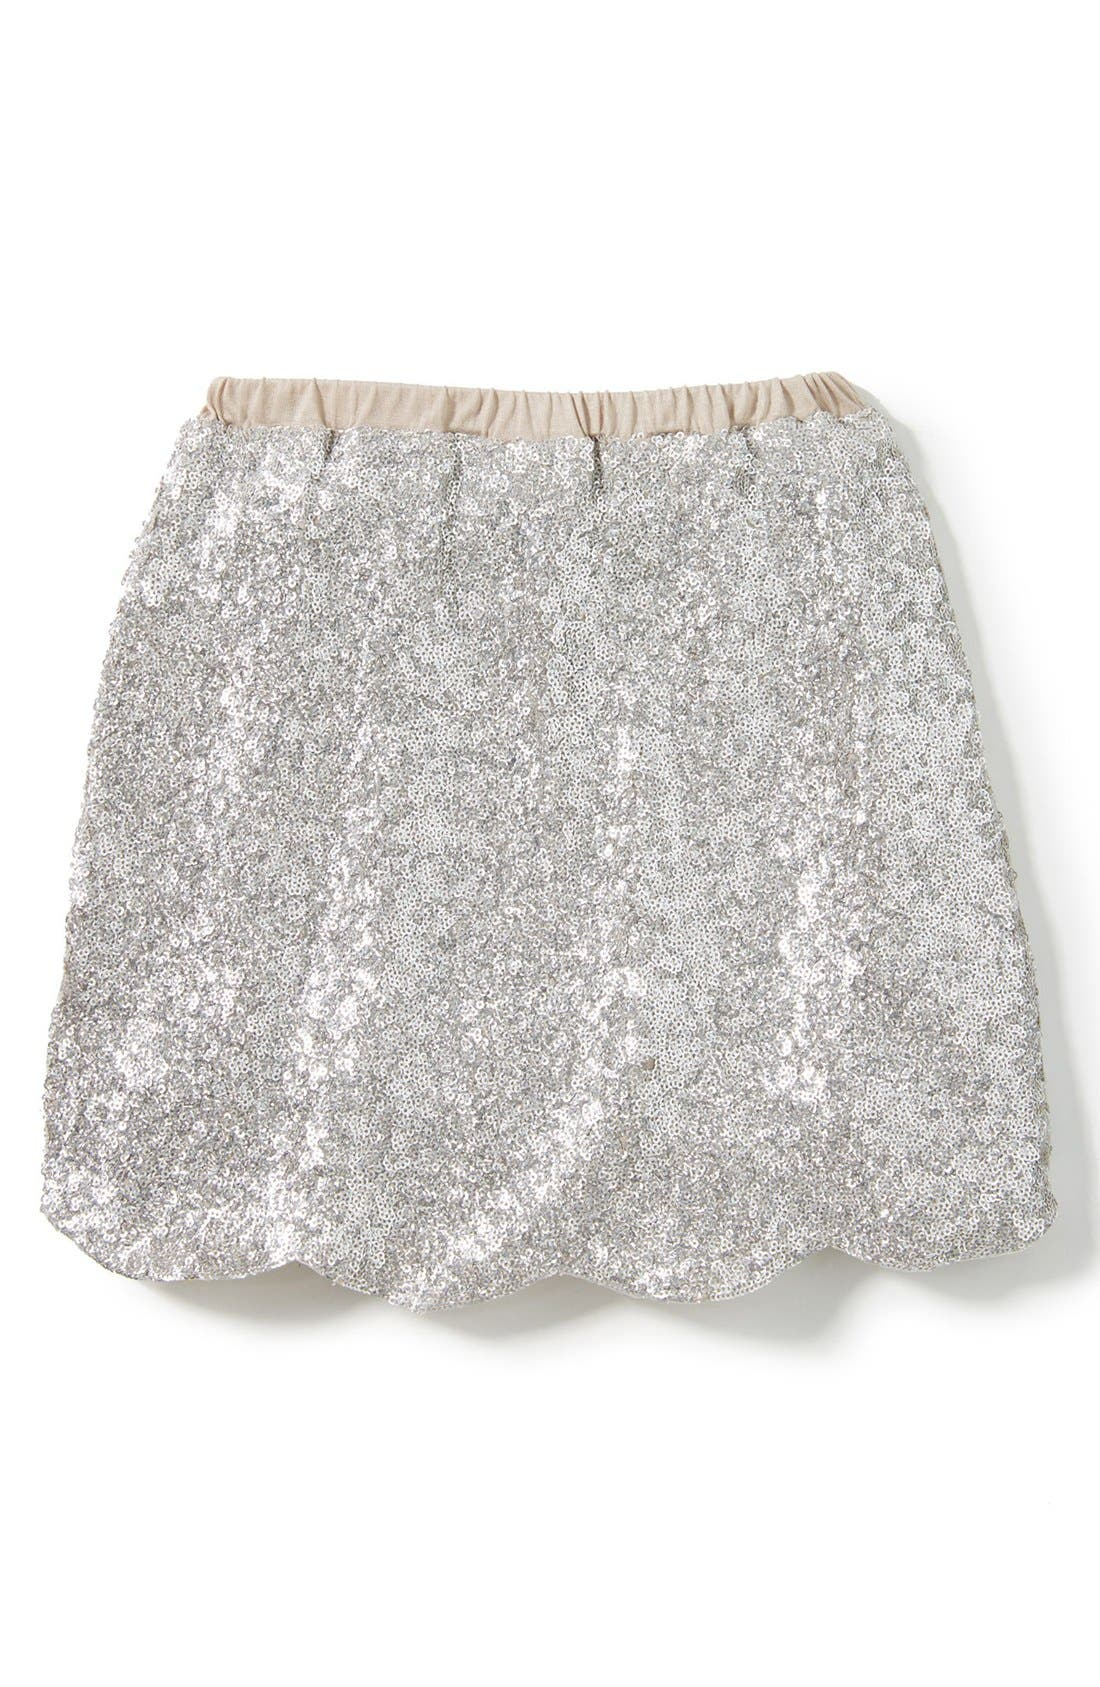 Main Image - Peek Drew Sequin Skirt (Little Girls & Big Girls)